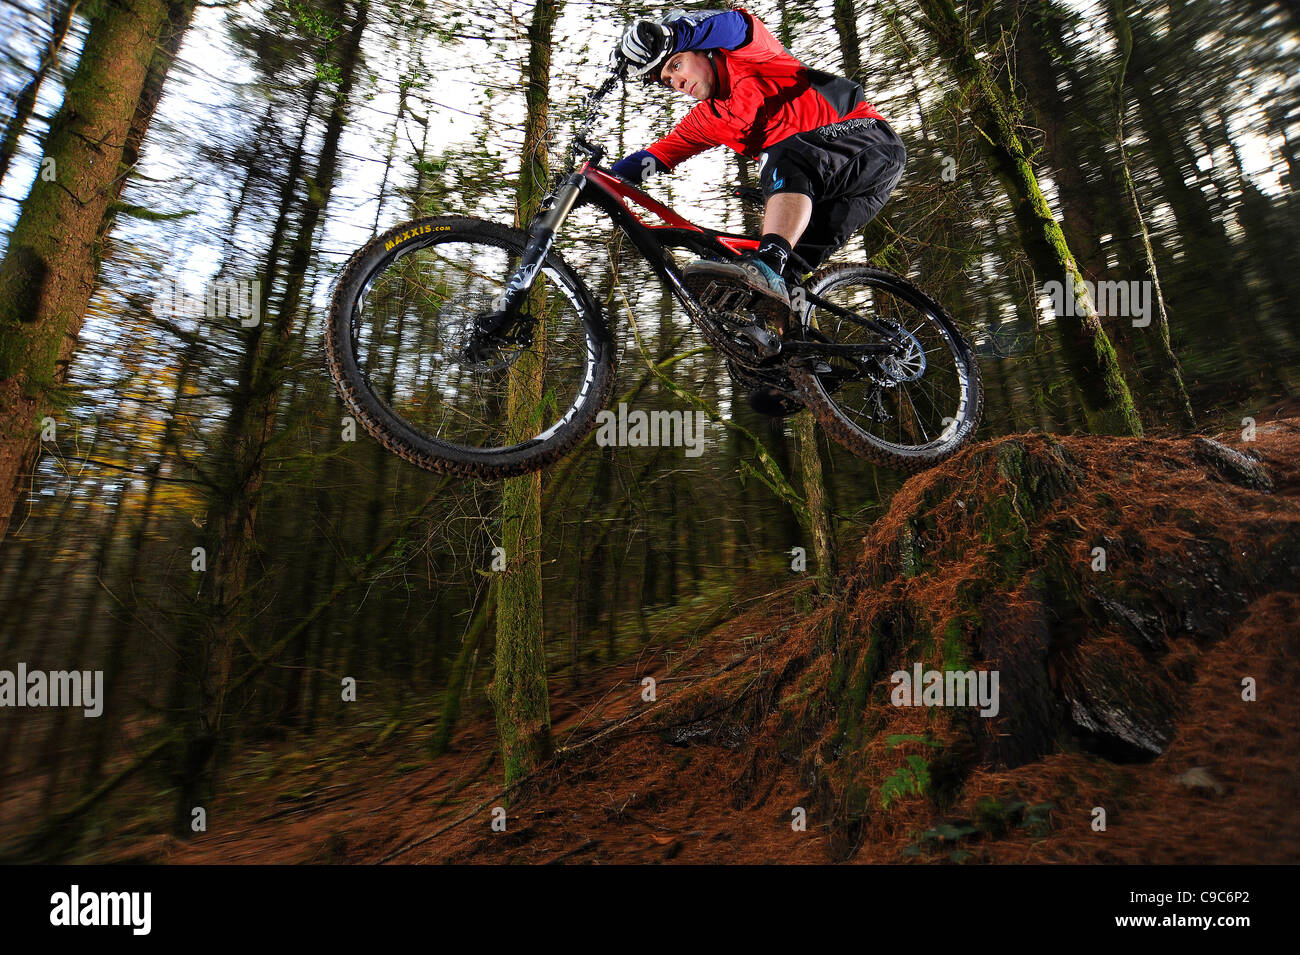 e7ad72b6925 A mountain biker jumps a drop on a forest trail in South Wales. - Stock